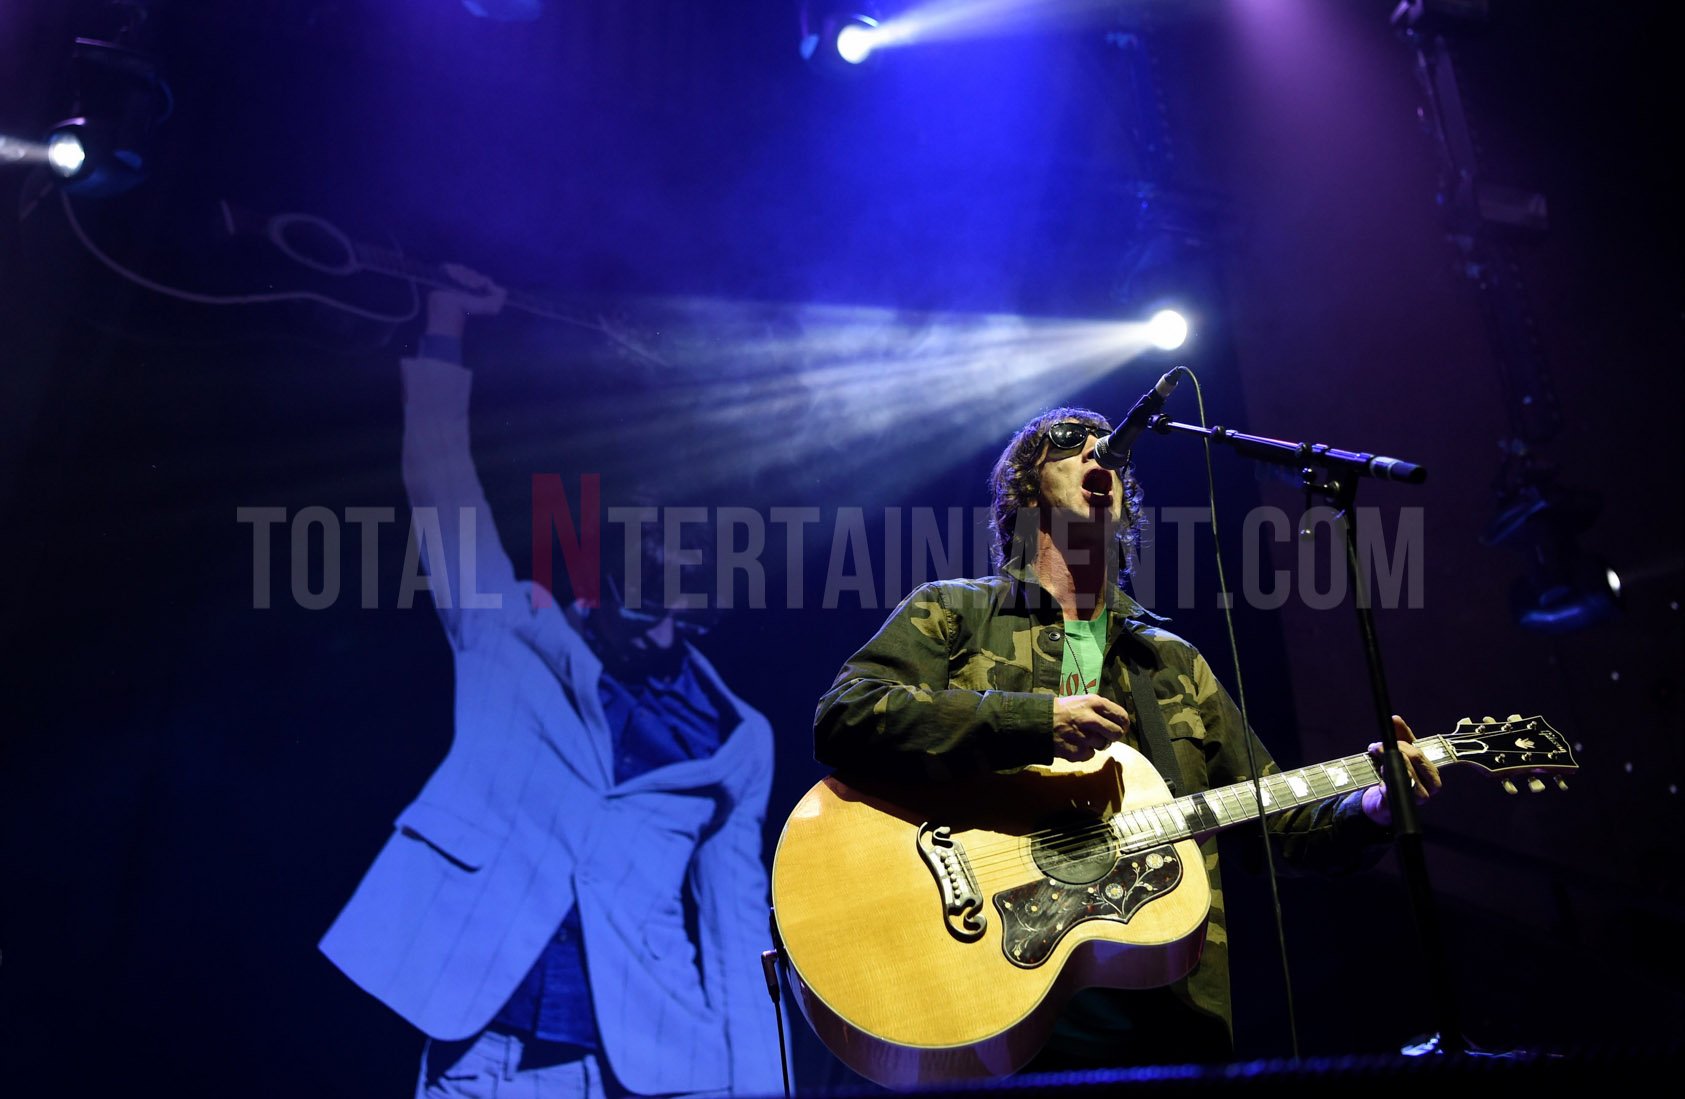 Richard Ashcroft, Stephen Farrell, Music, TotalNtertainment, Review, Manchester